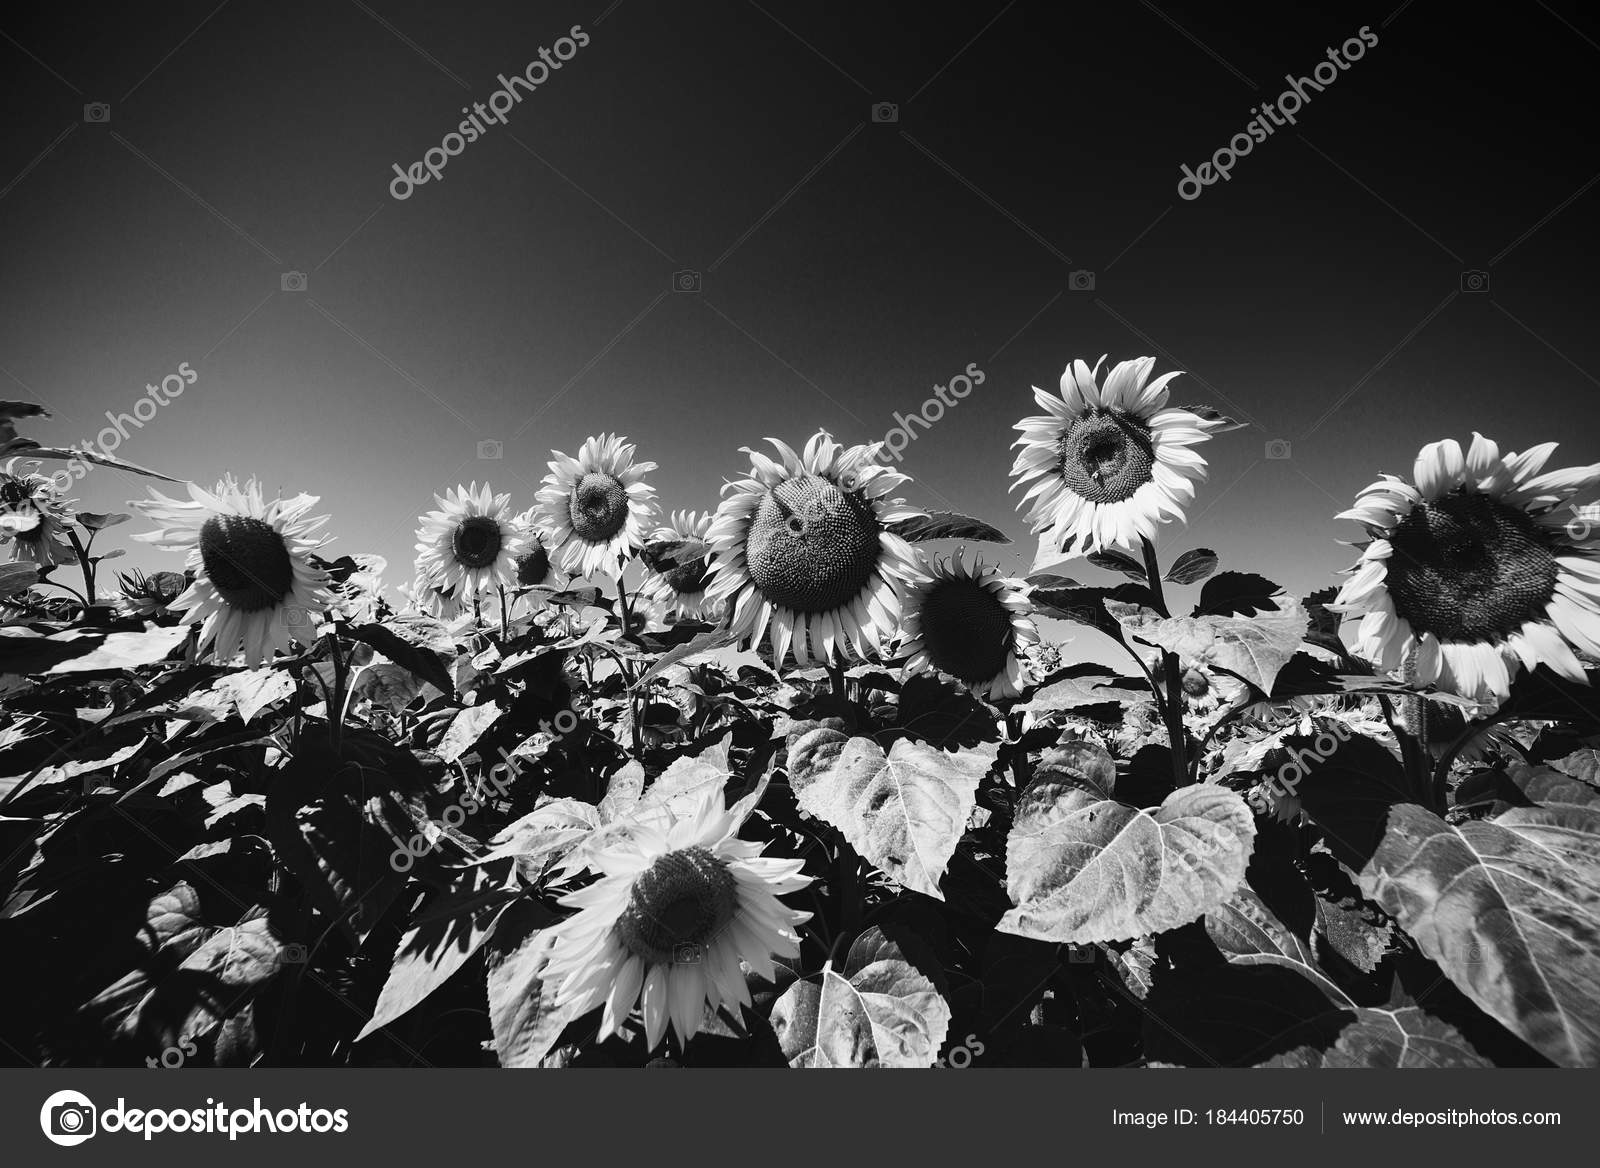 Sunflowers Field Black And White Image Stock Photo Volurol